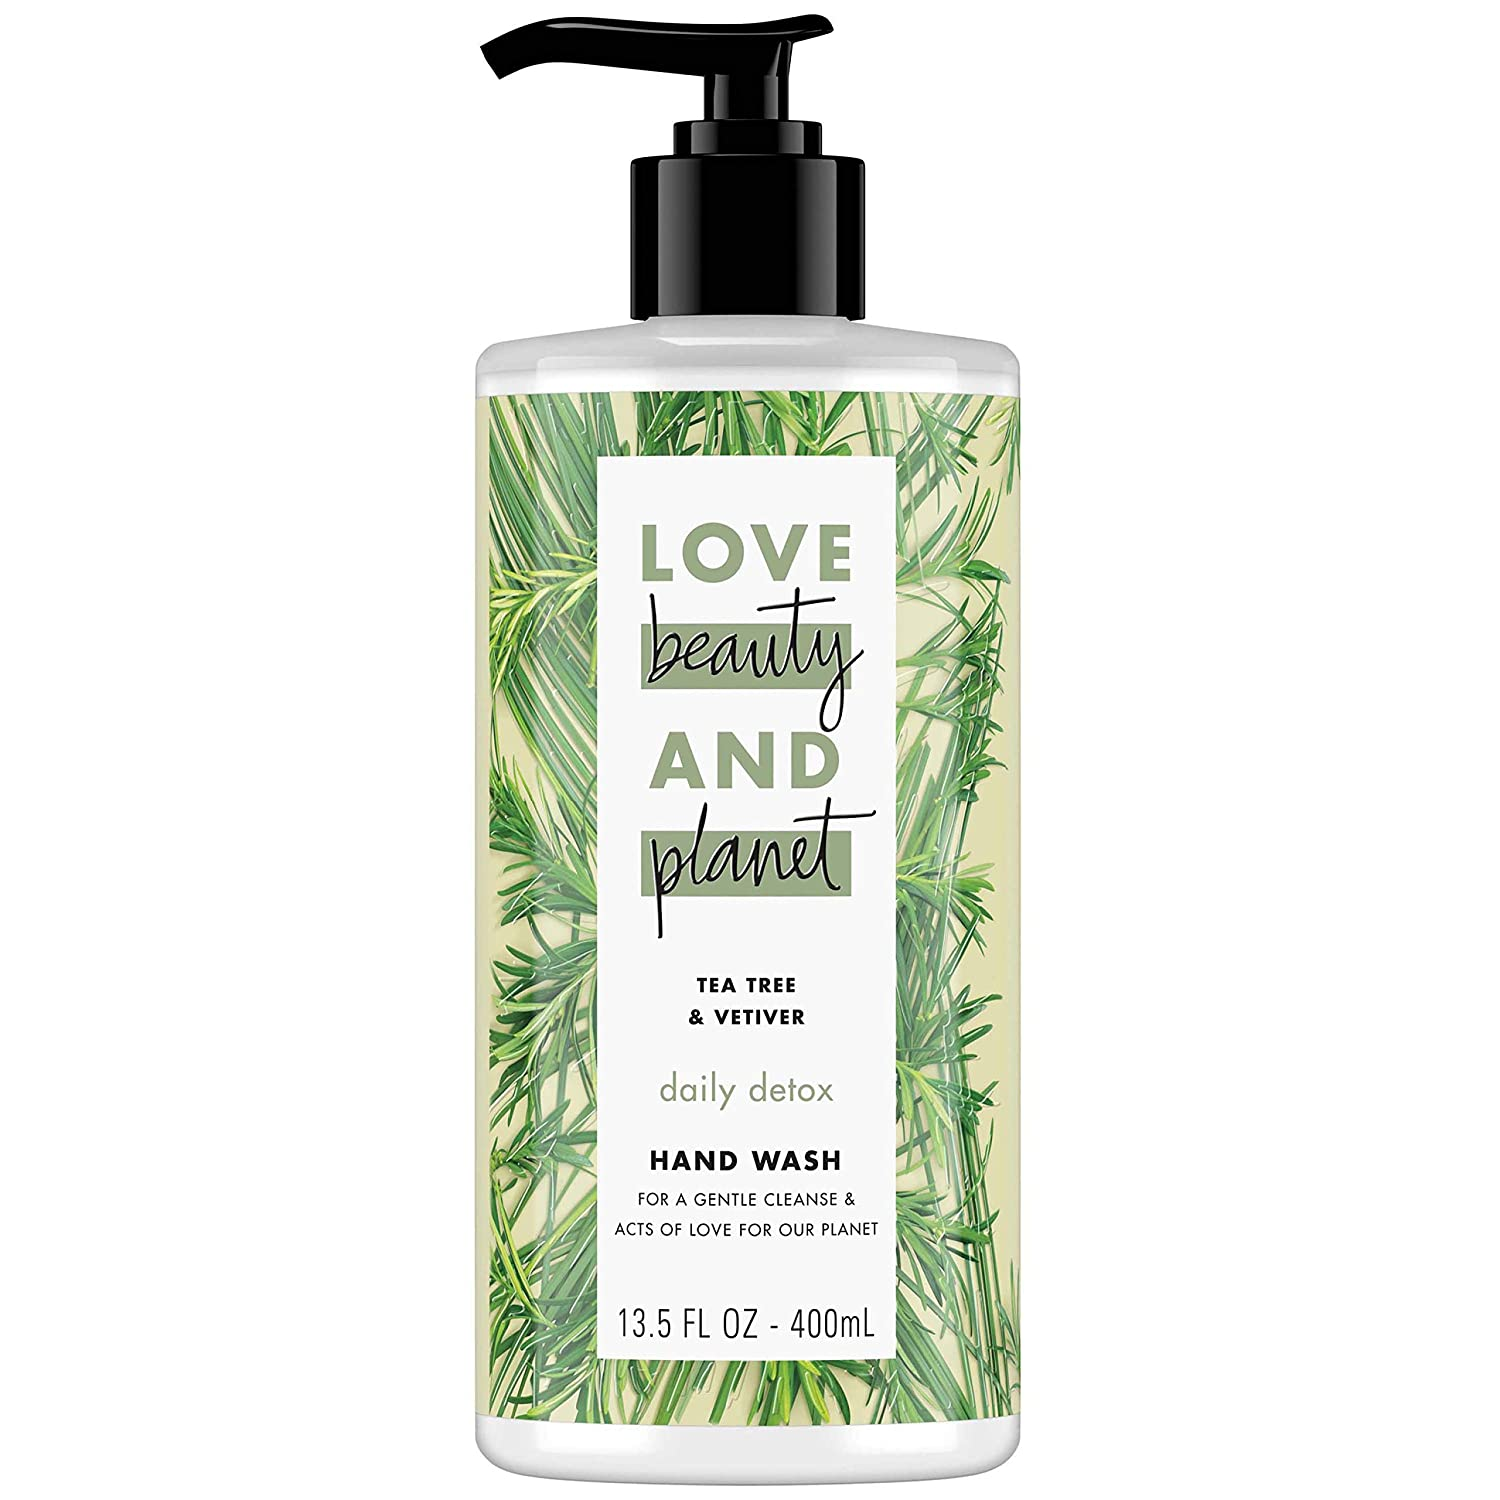 Love Beauty & Planet Daily Detox Hand Soap Tea Tree Oil & Vetiver Wash Away Bacteria with Effective Plant-Based Cleansers 13.5 oz